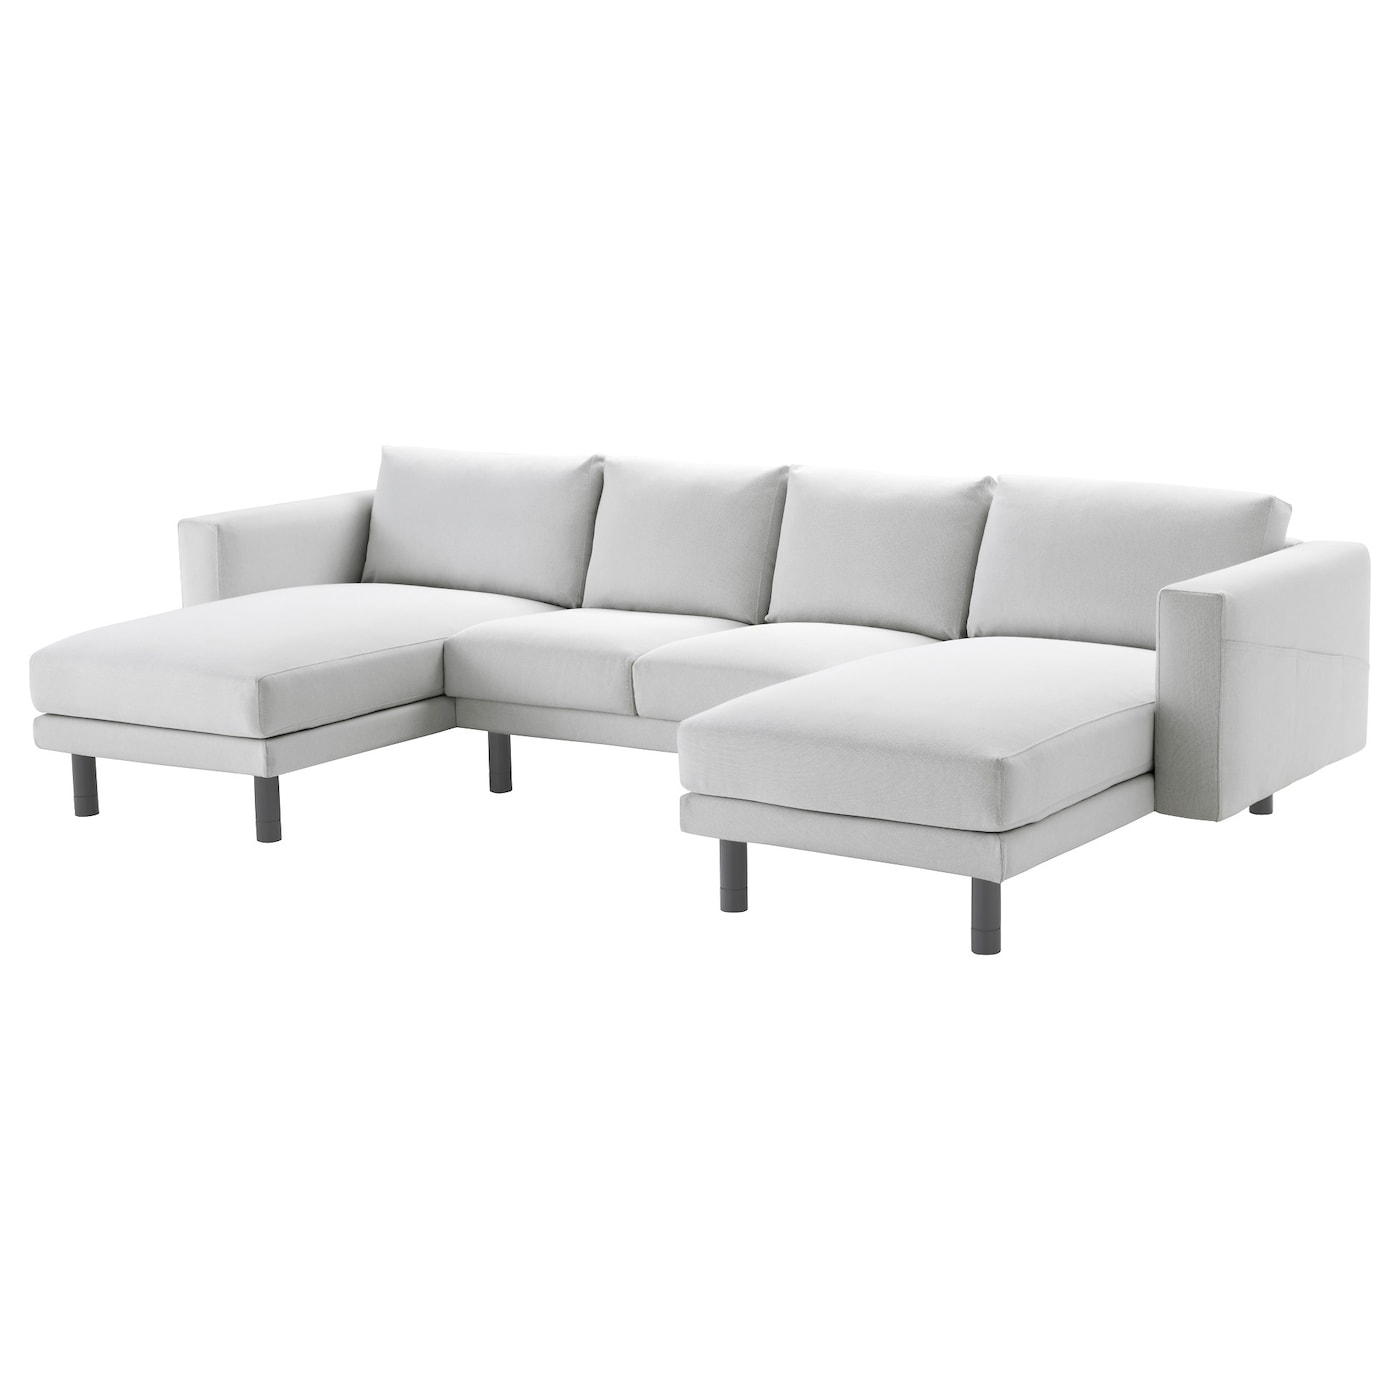 norsborg 2 seat sofa with 2 chaise longues finnsta white